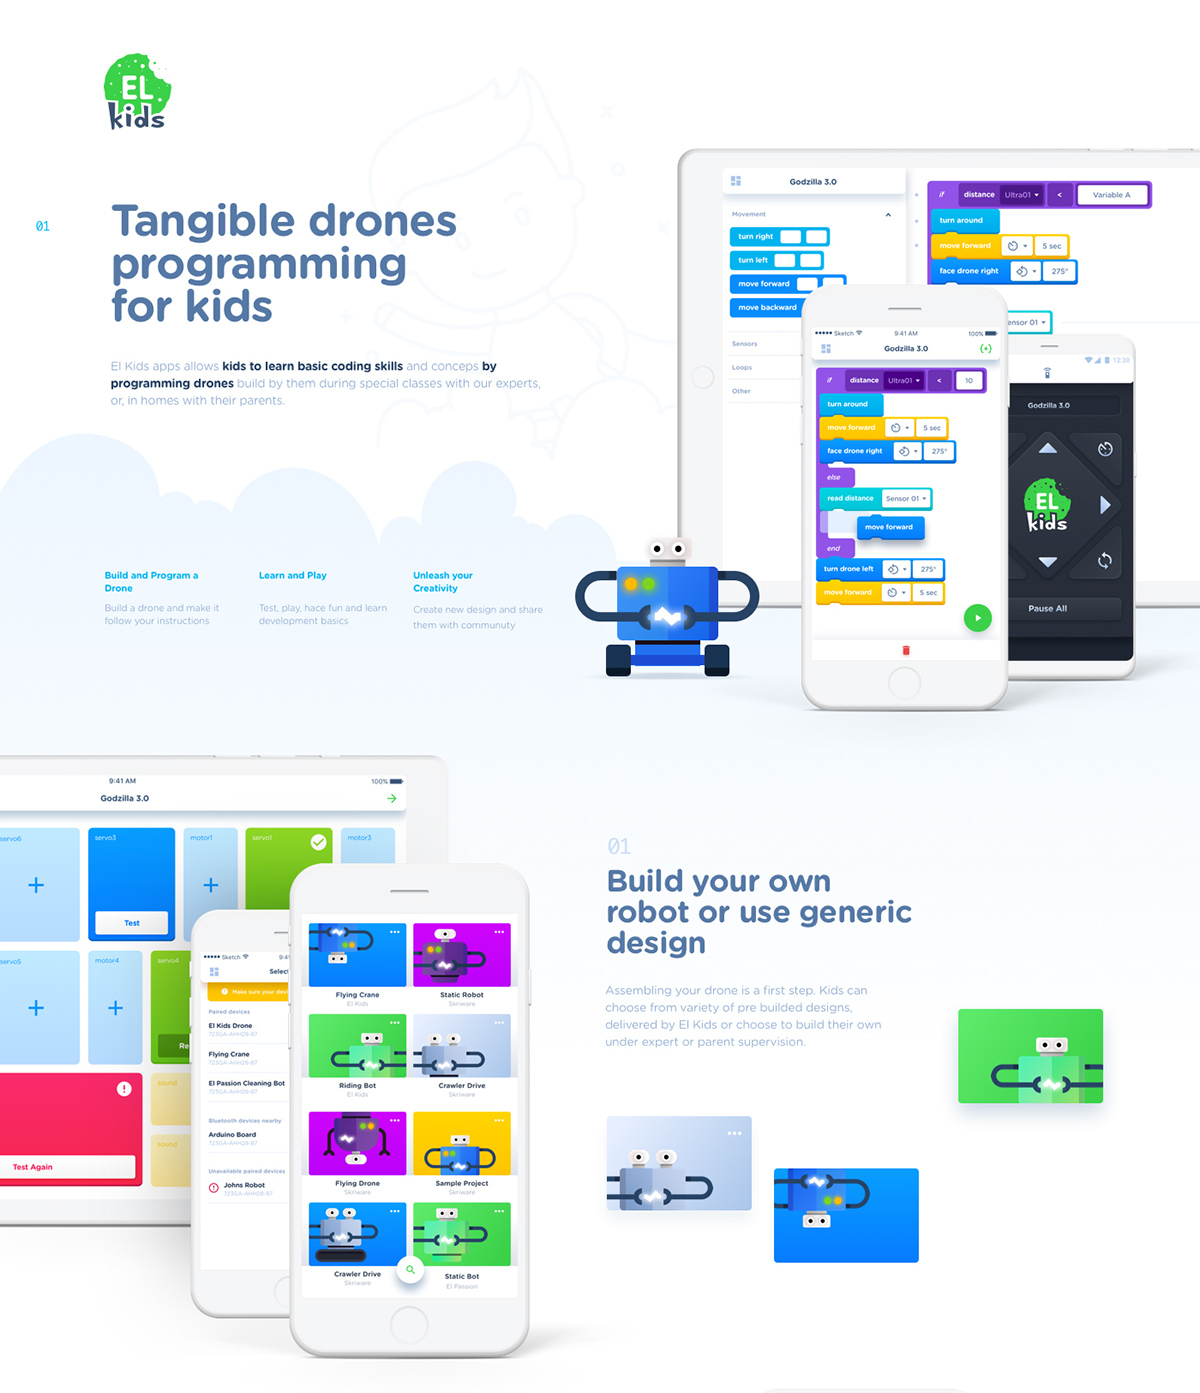 El Kids Tangible Drones Programming App on Wacom Gallery